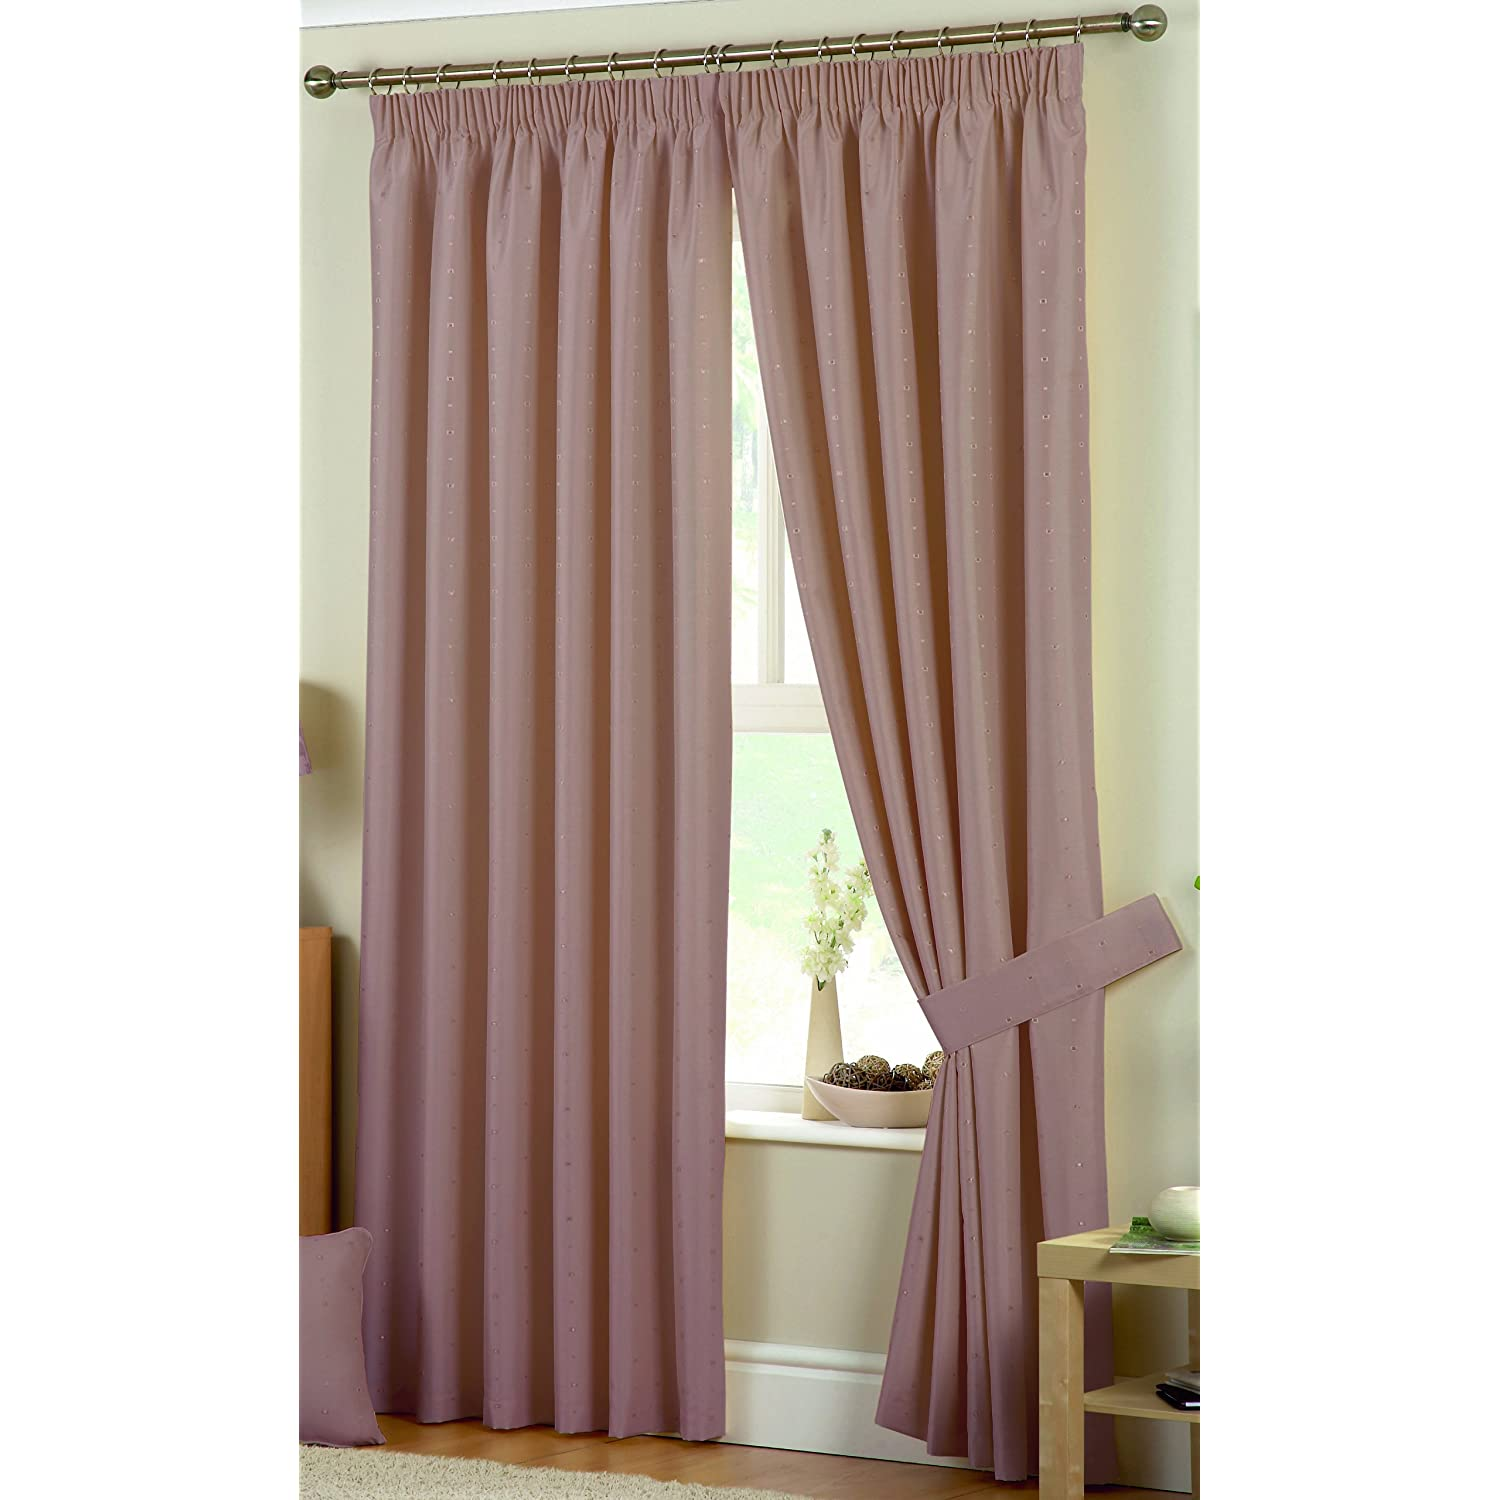 Curtina hudson eyelet lined coffee bedroom living room curtains 66 x 72cm ebay for Lined valances for living room